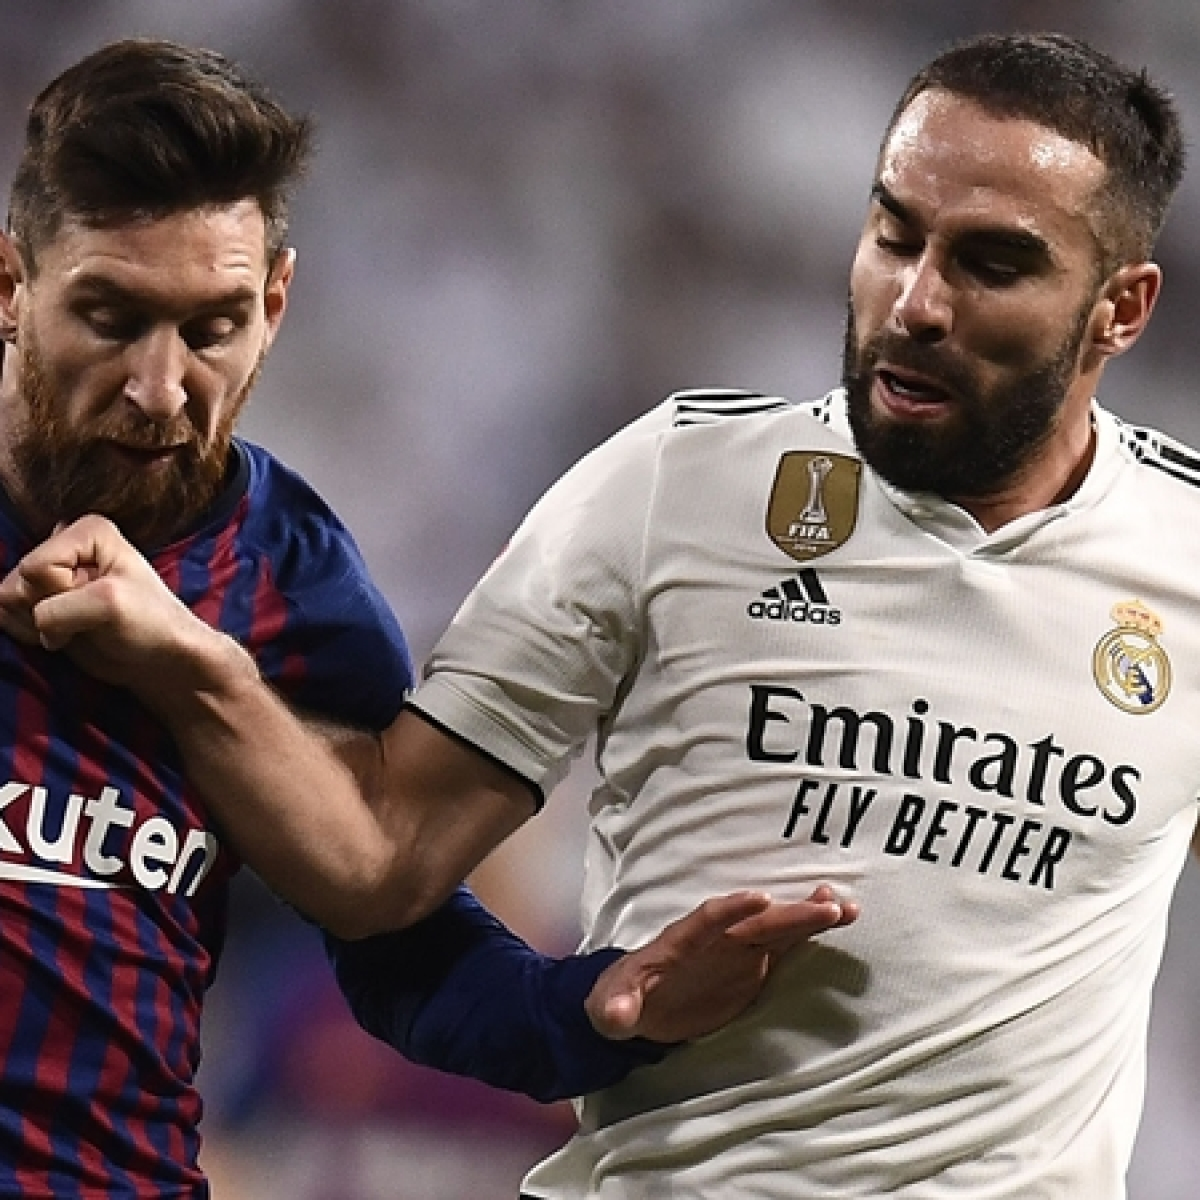 El Clasico' match between Barcelona and Real Madrid postponed due to security concerns in Barcelona